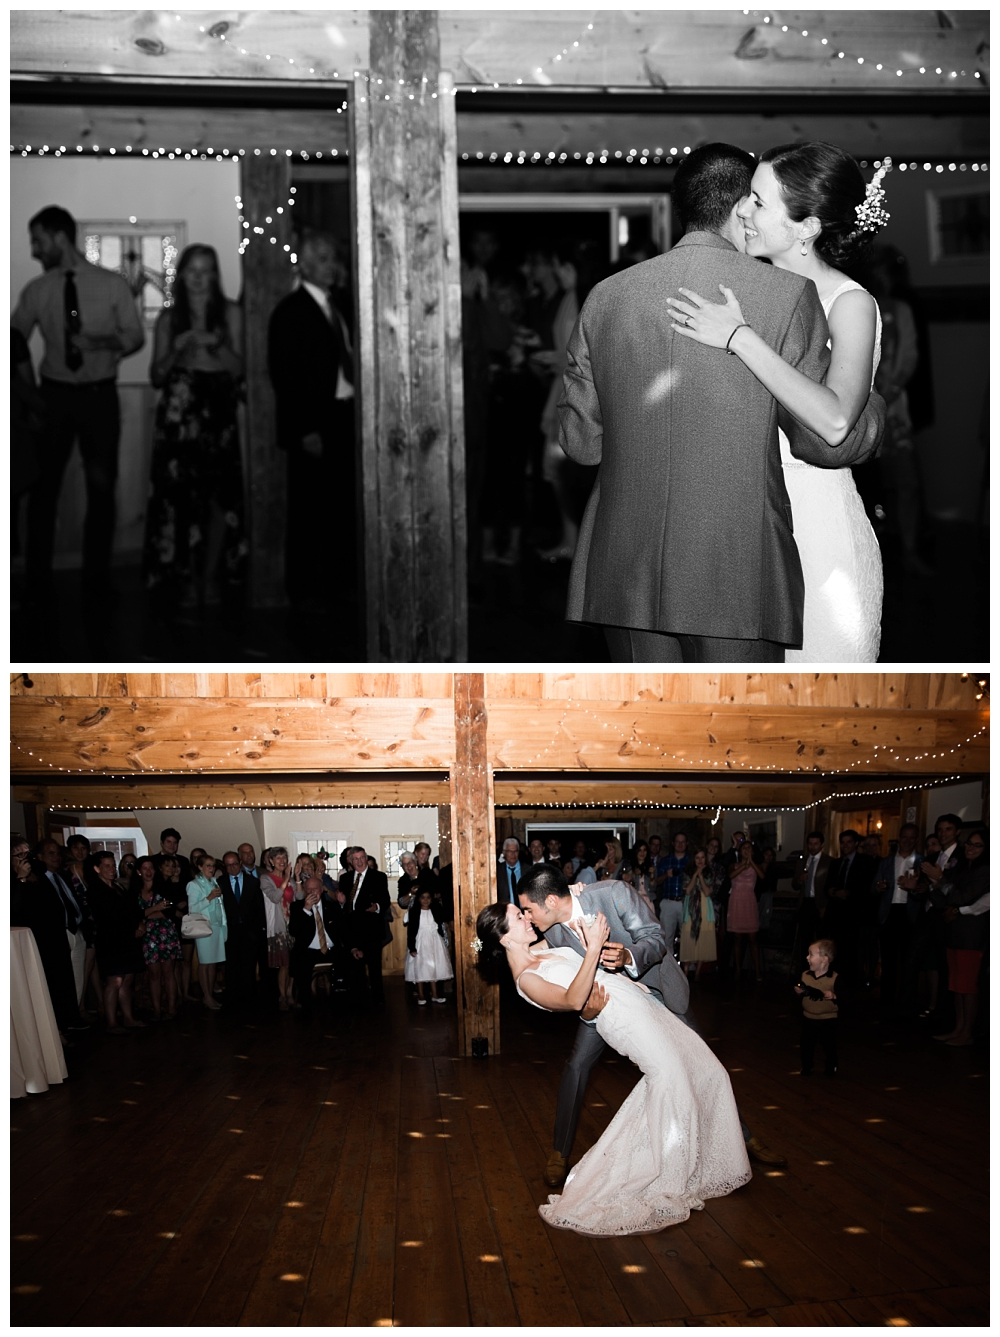 Maine Wedding Photographer Clark's Cove Farm & Inn first dance